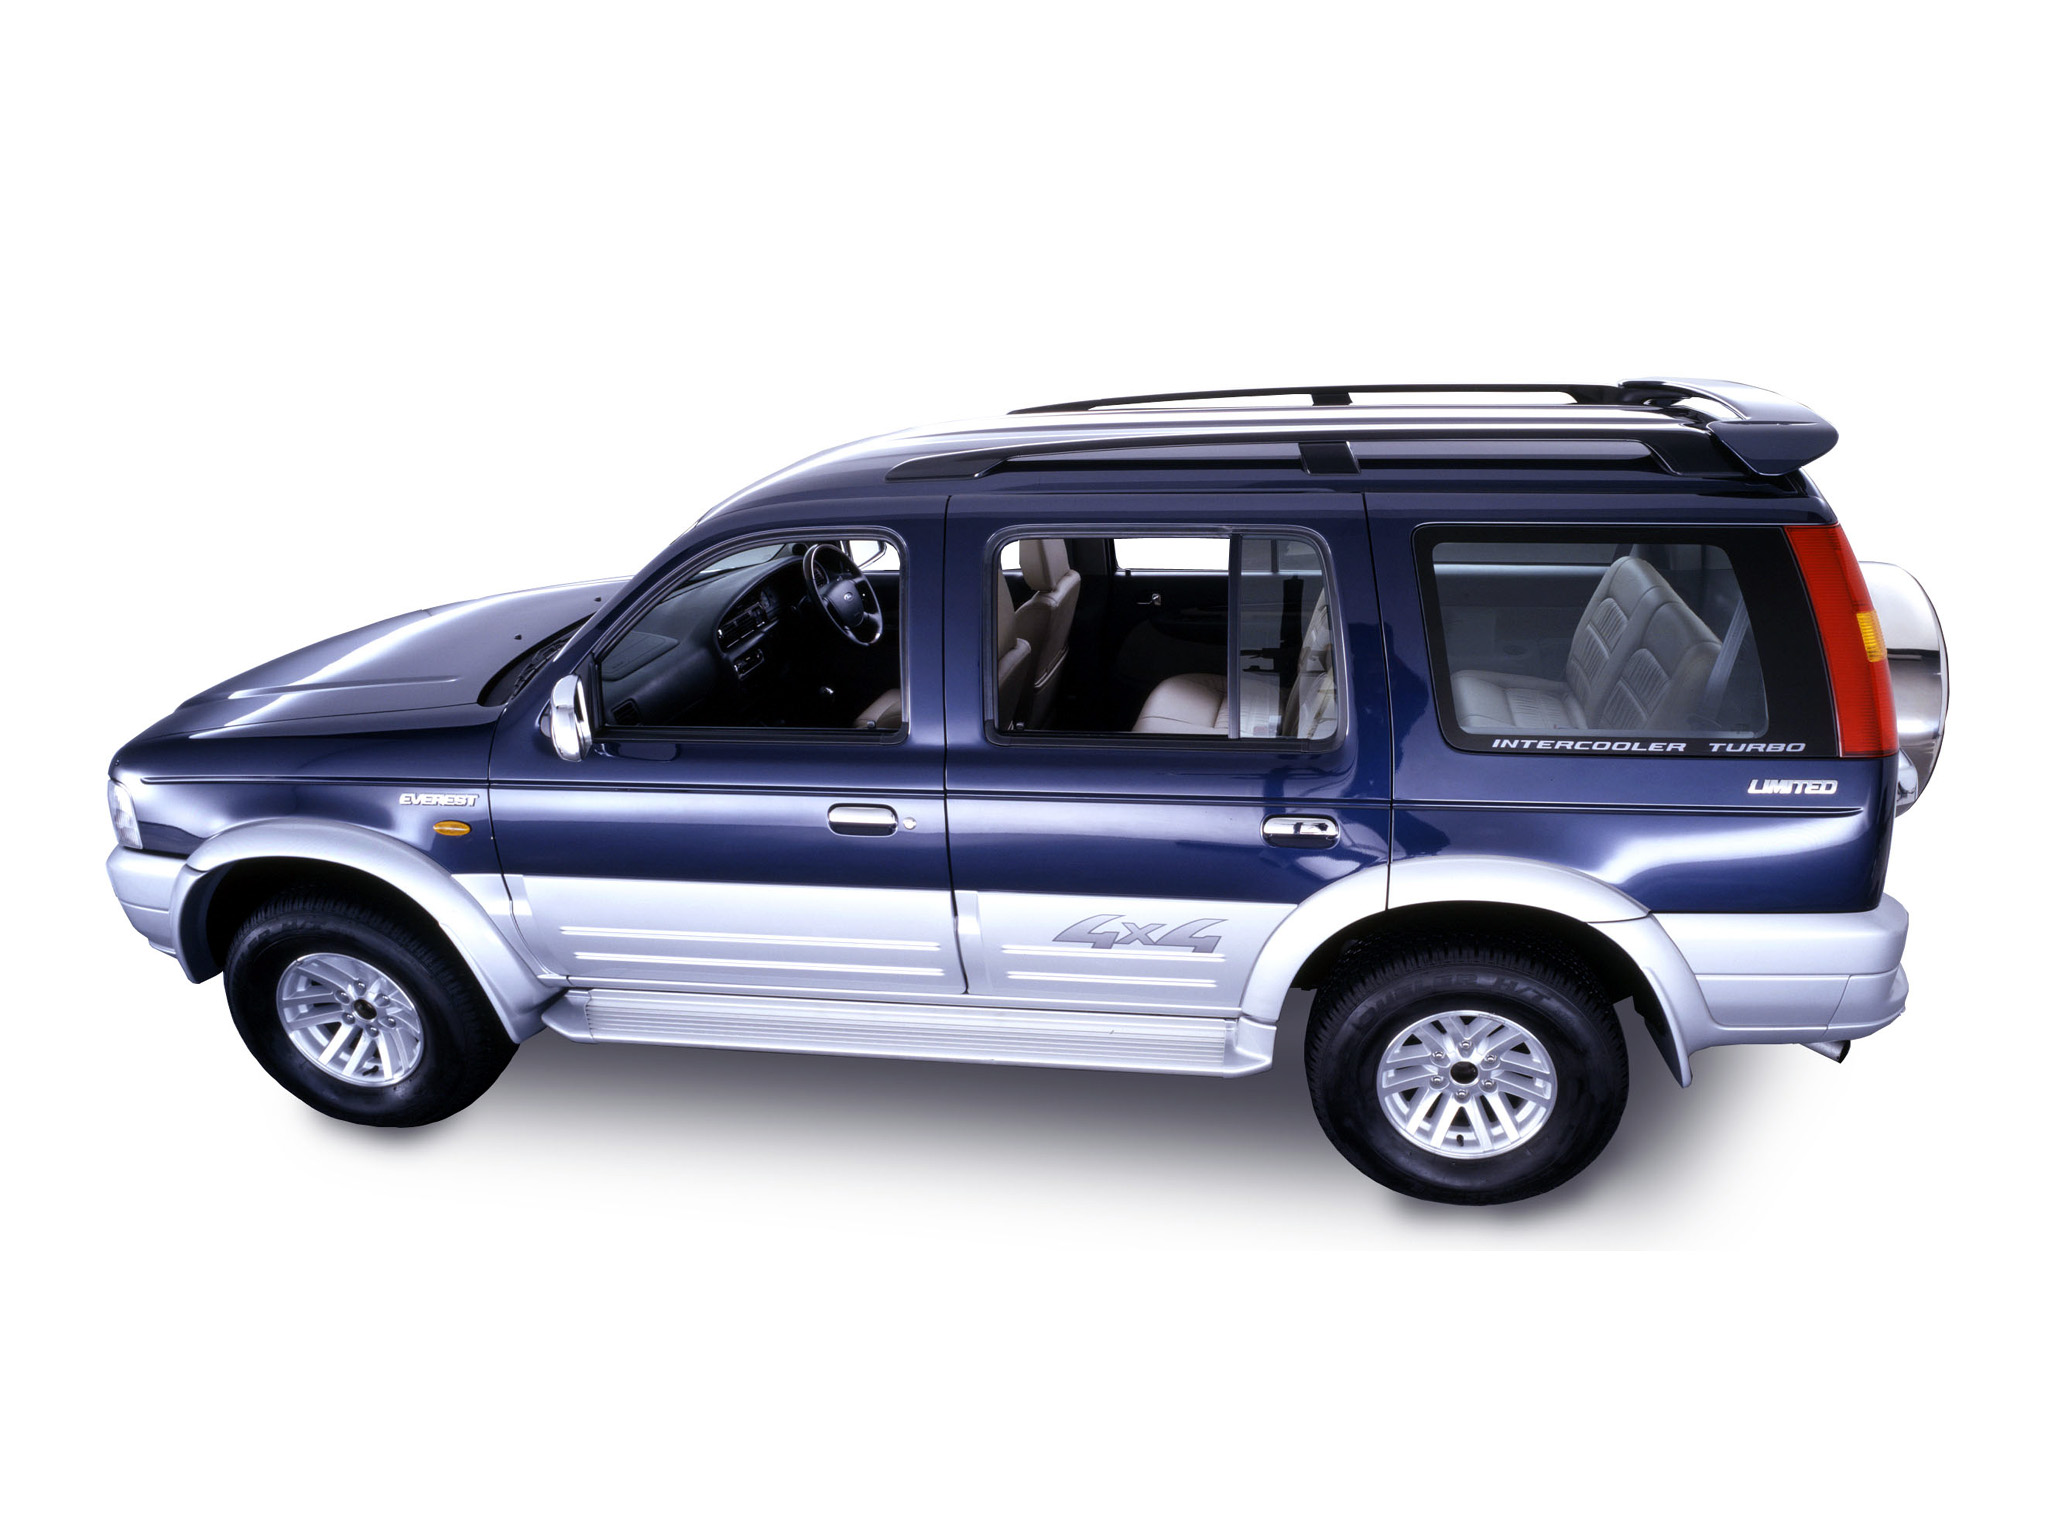 Ford Everest 2003 foto - 3